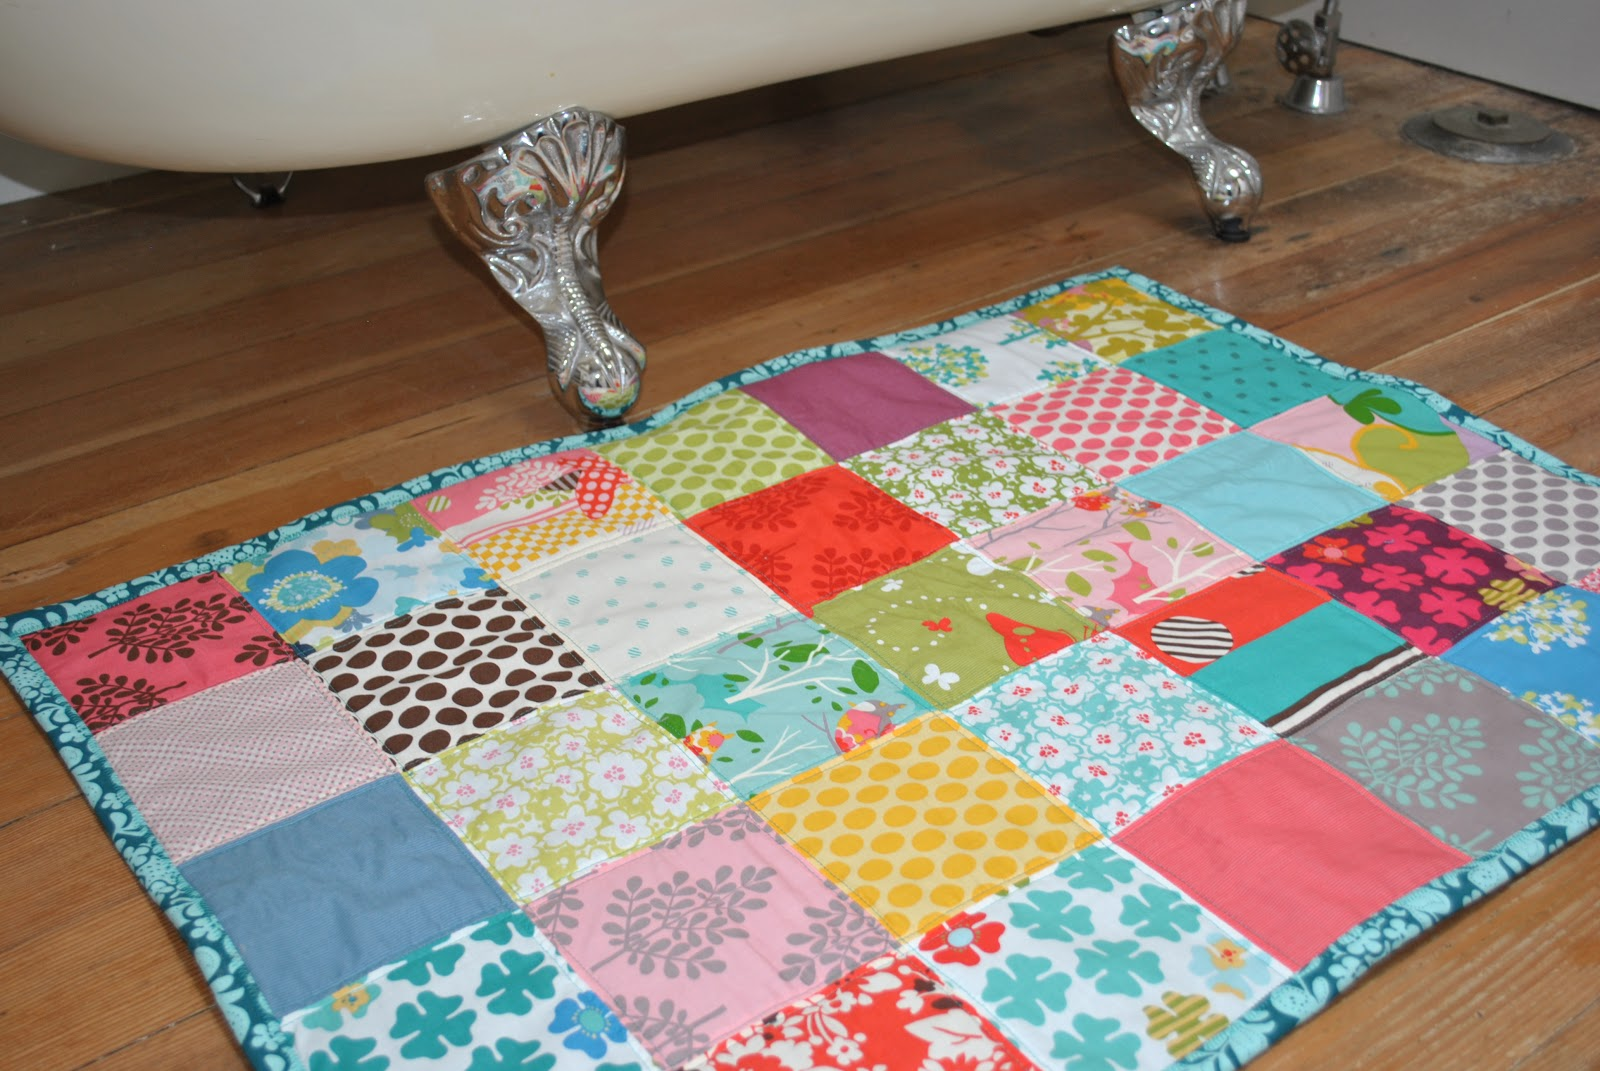 The girl who quilts quilted bathmats - Alfombras de patchwork ...